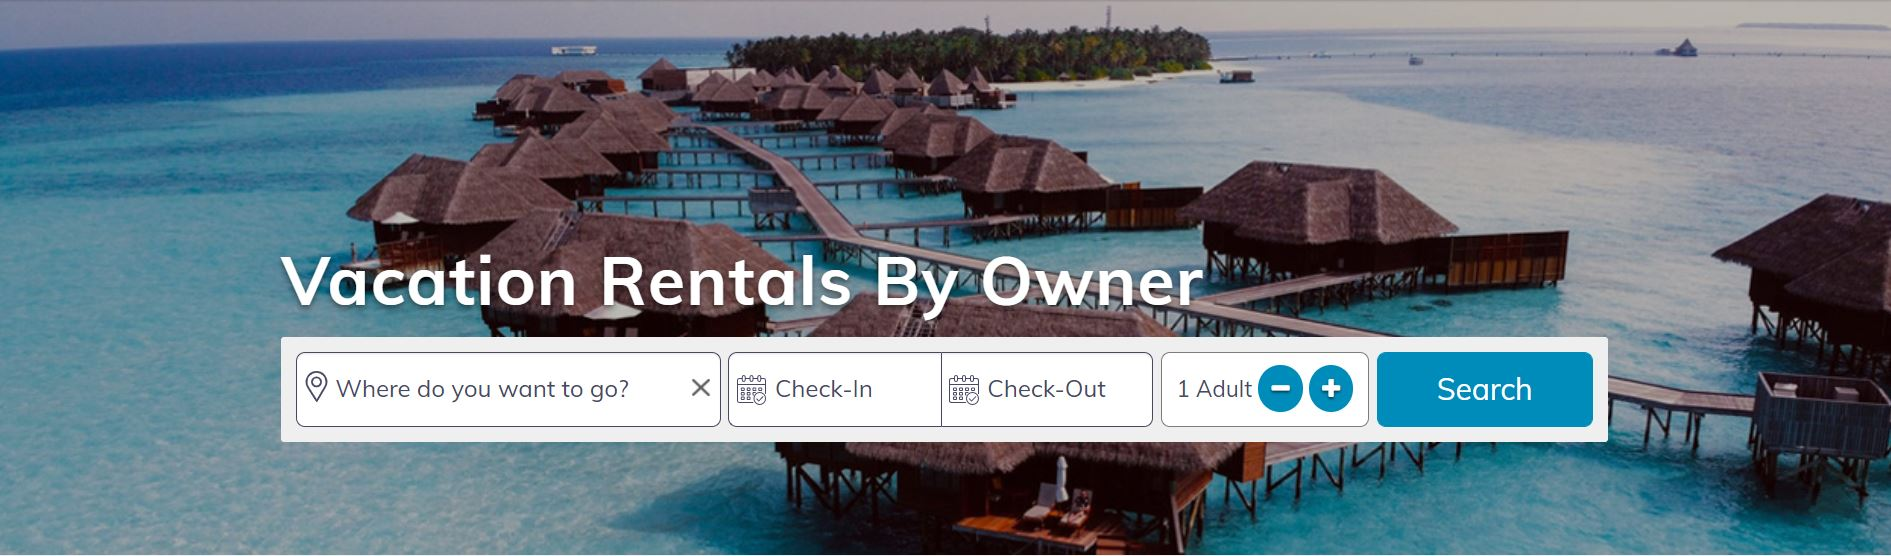 Top 10 Vacation Rental Websites - Vacation Rentals By Owner | Find Home Away